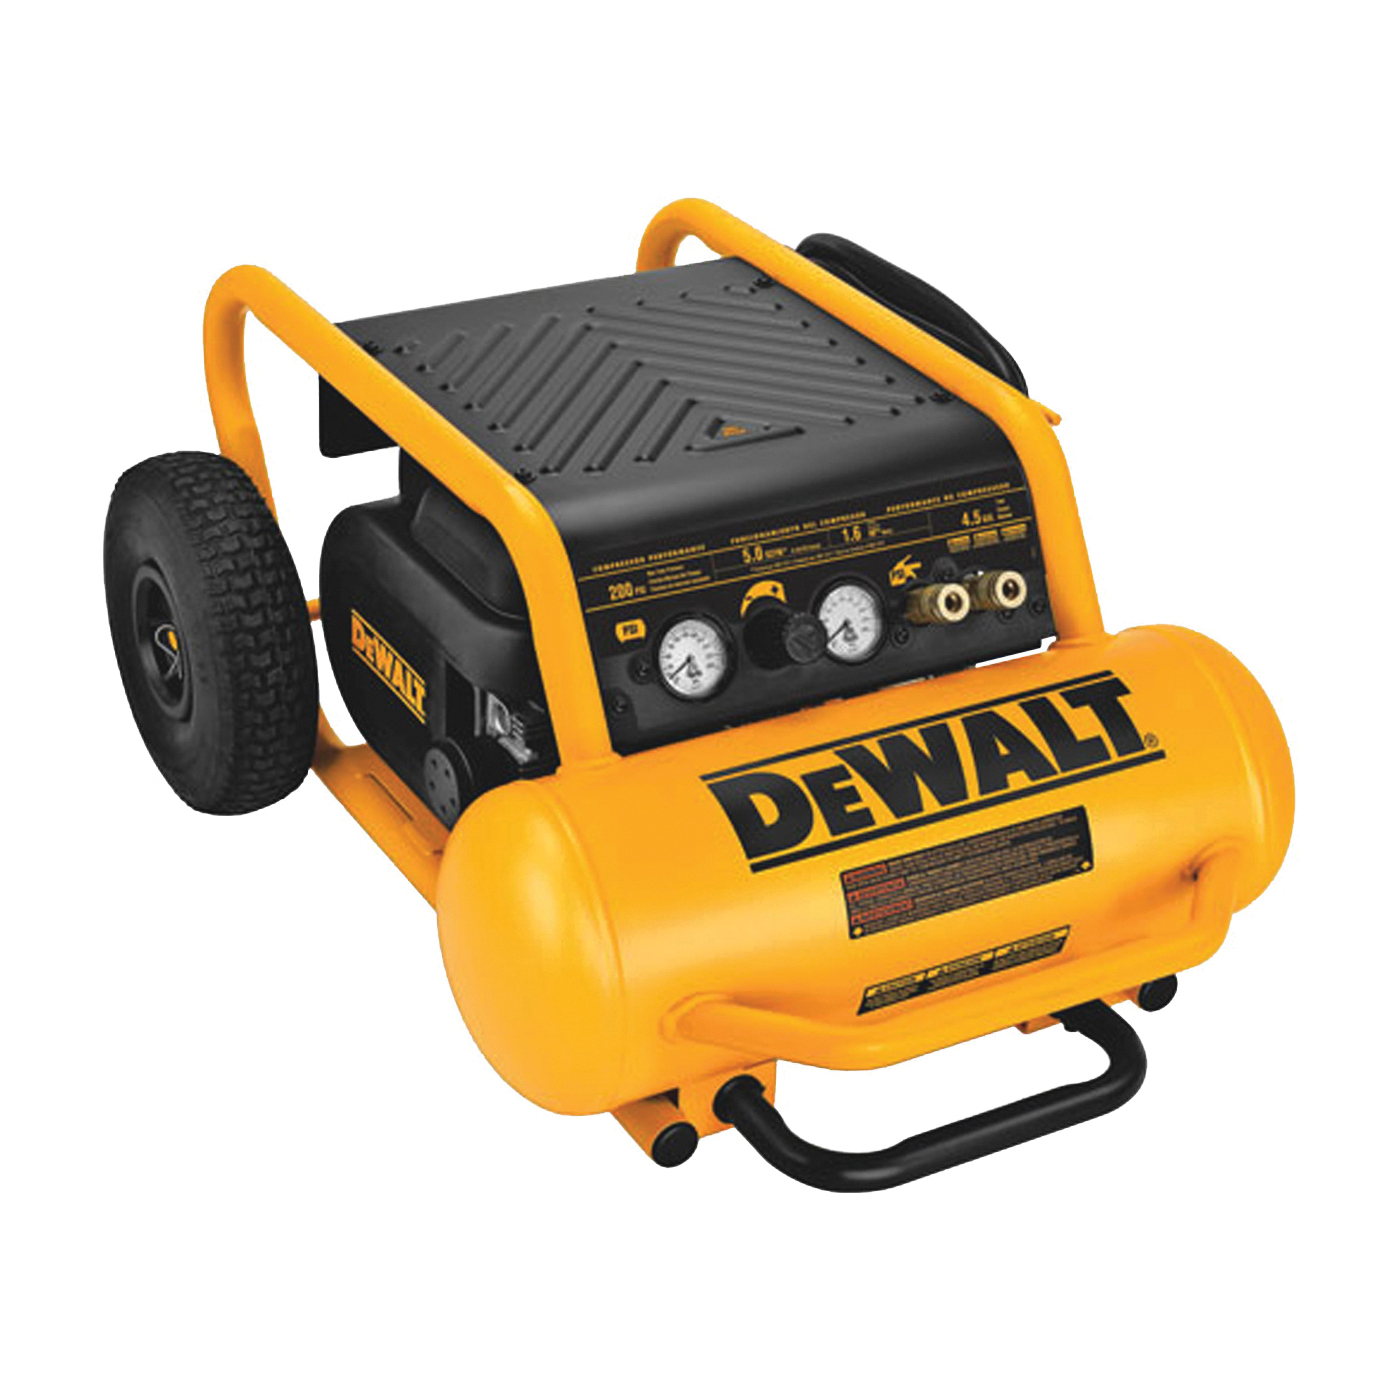 Picture of DeWALT D55146 Portable Air Compressor, 4.5 gal Tank, 1.6 hp, 120 V, 200 psi Pressure, 6.5 cfm Air